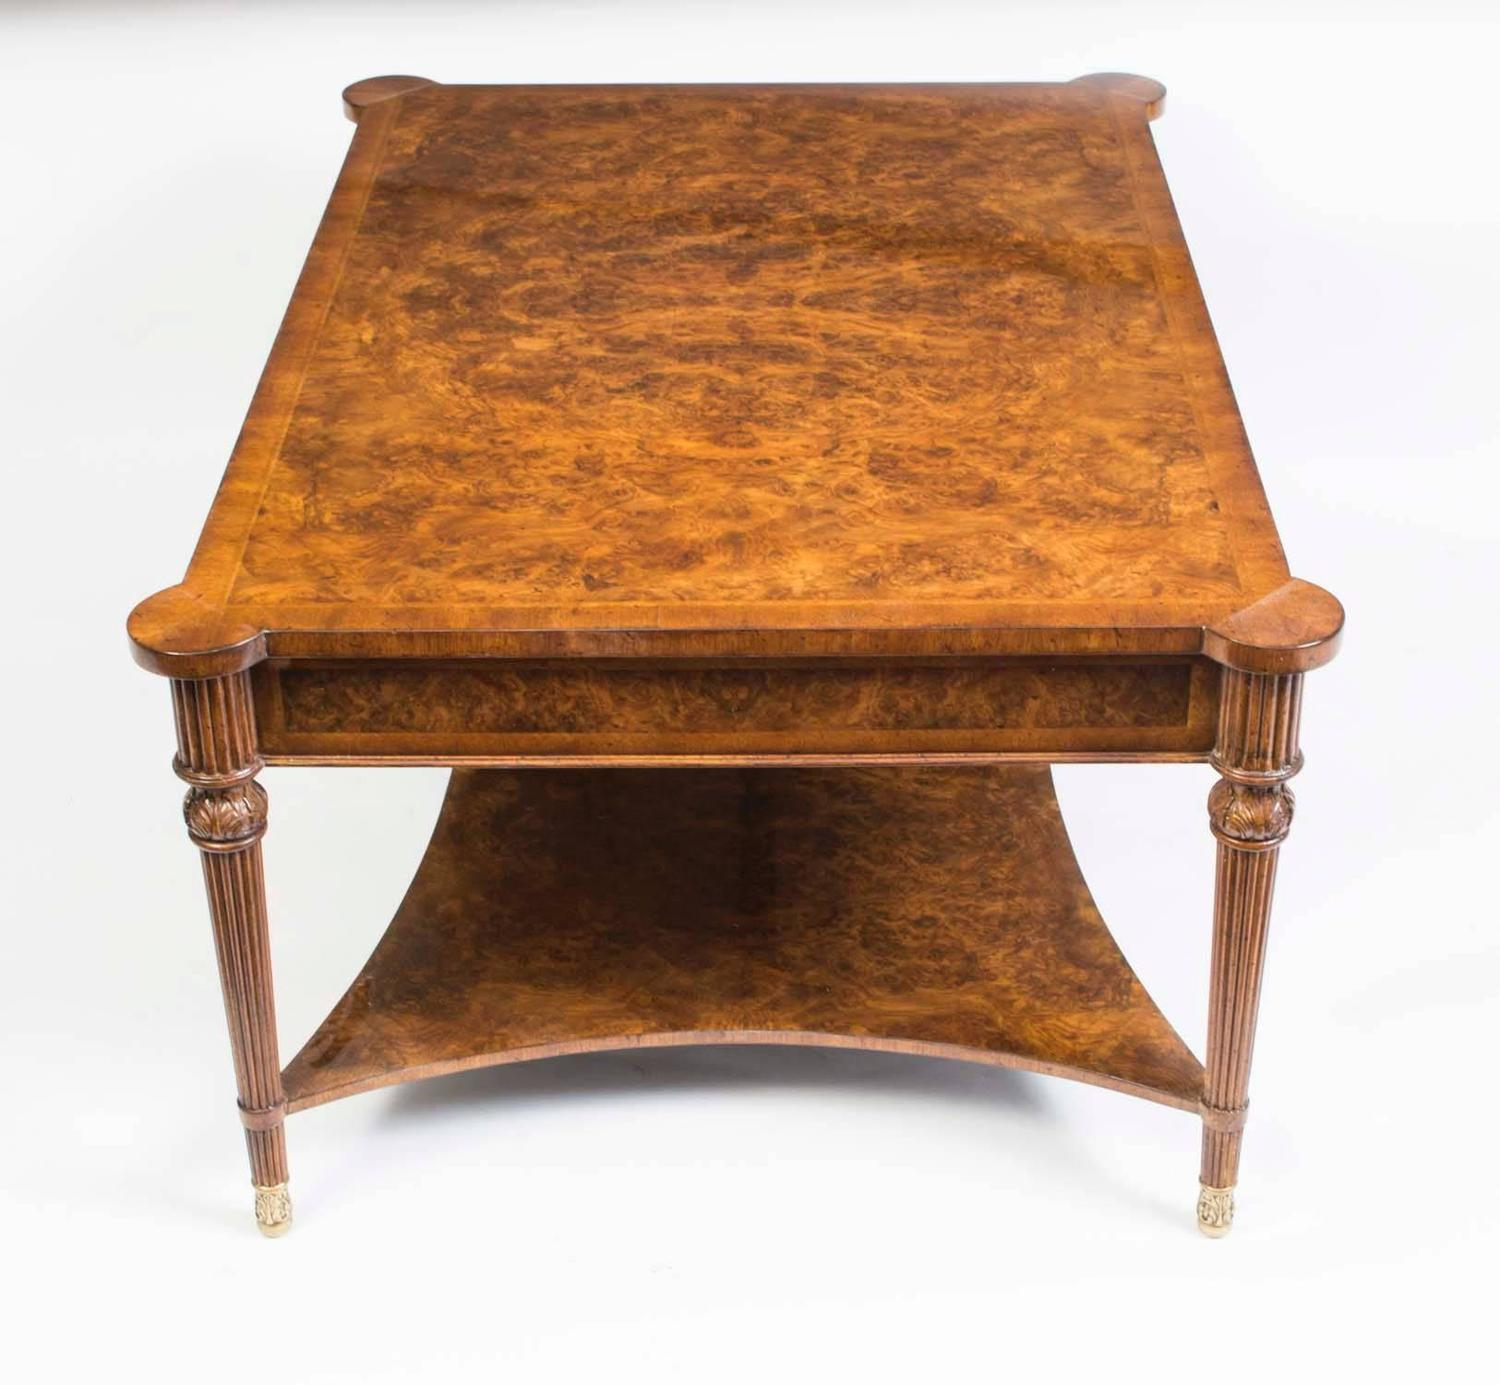 Elegant Burr Walnut Coffee Table With Four Drawers At 1stdibs